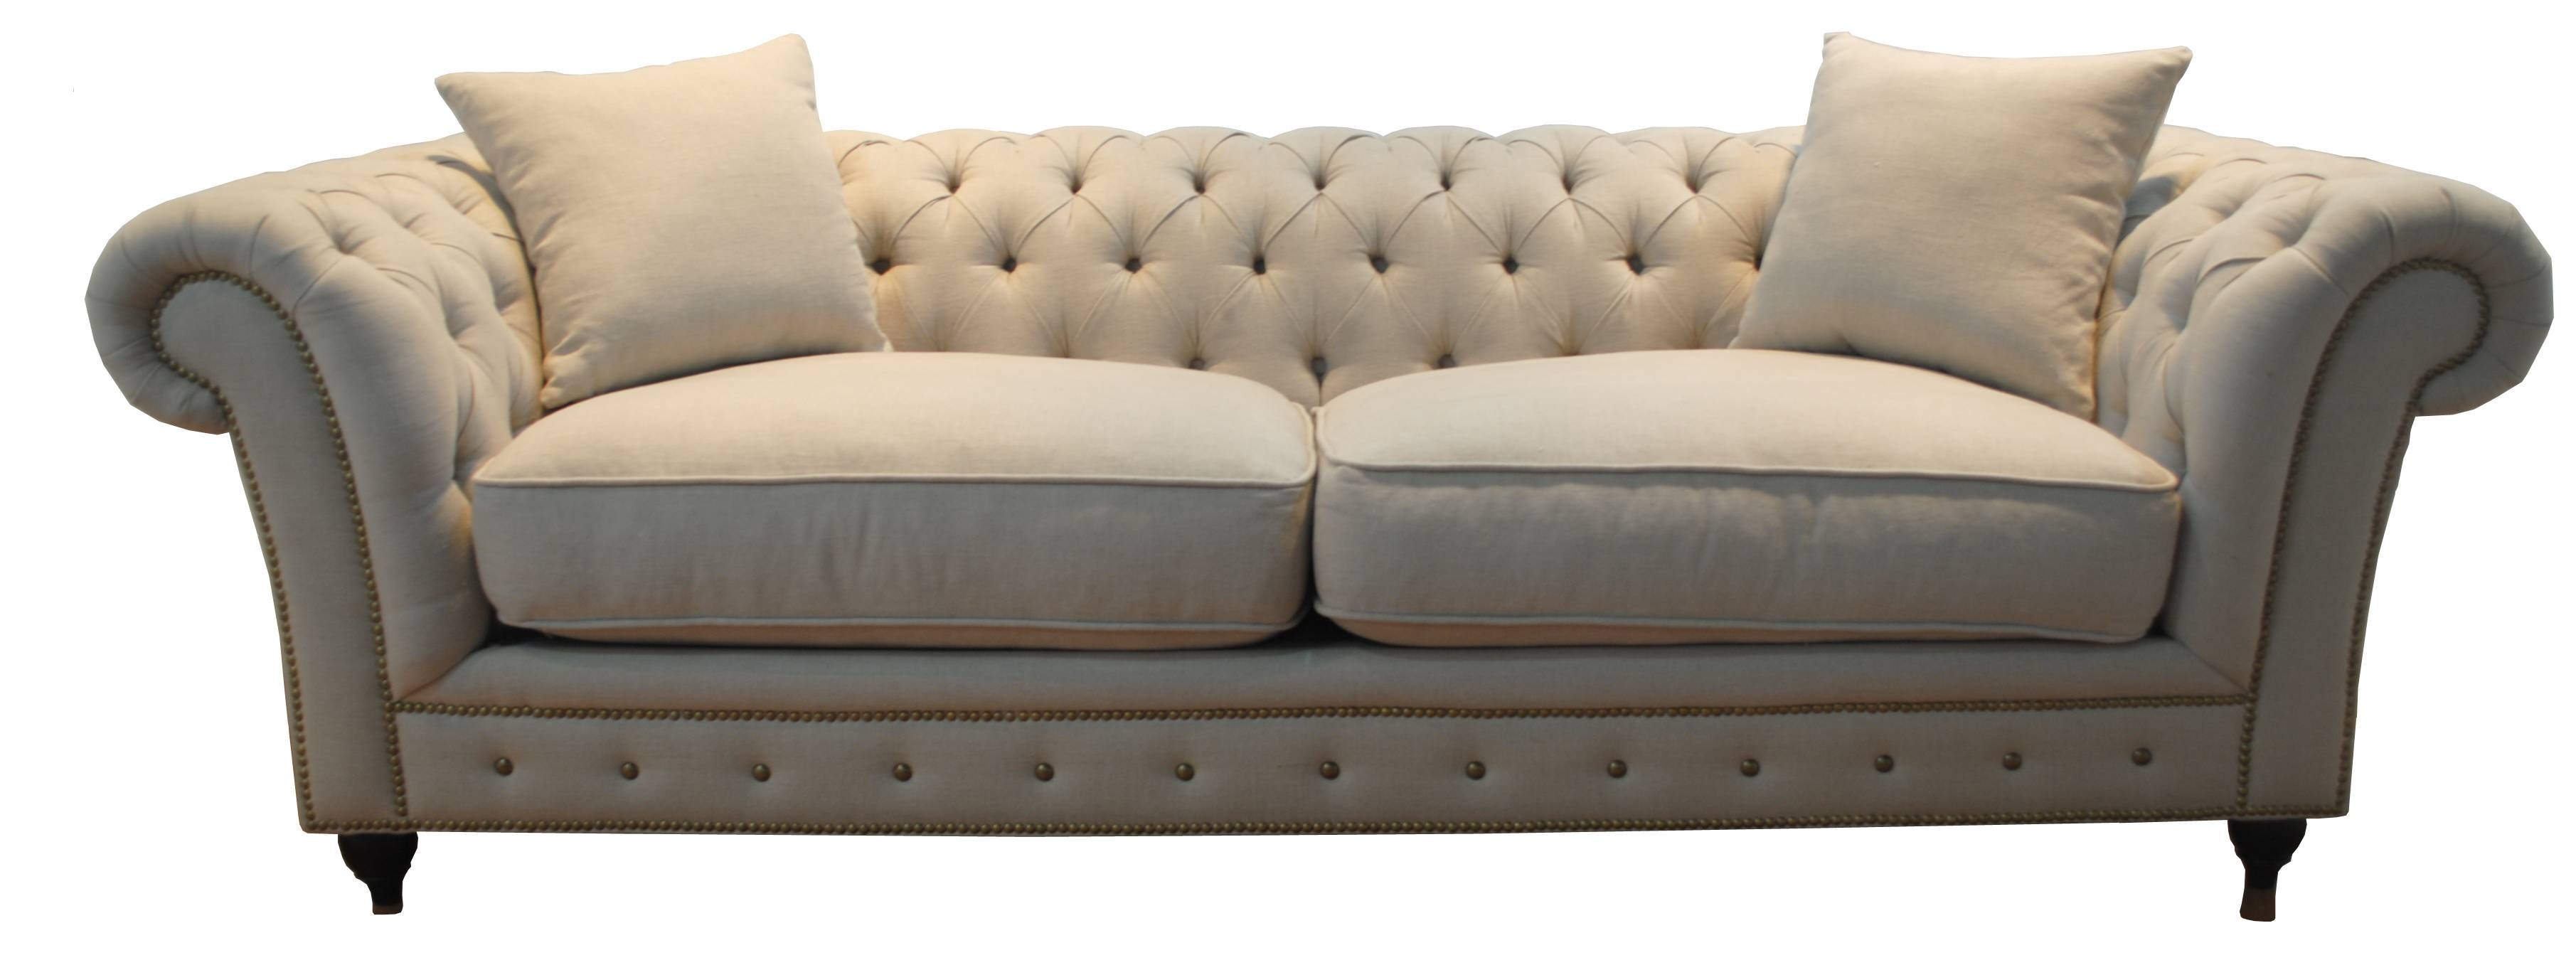 Room Furniture French Style Various Fabric Color Wooden Sofa Set regarding French Style Sofa (Image 16 of 25)